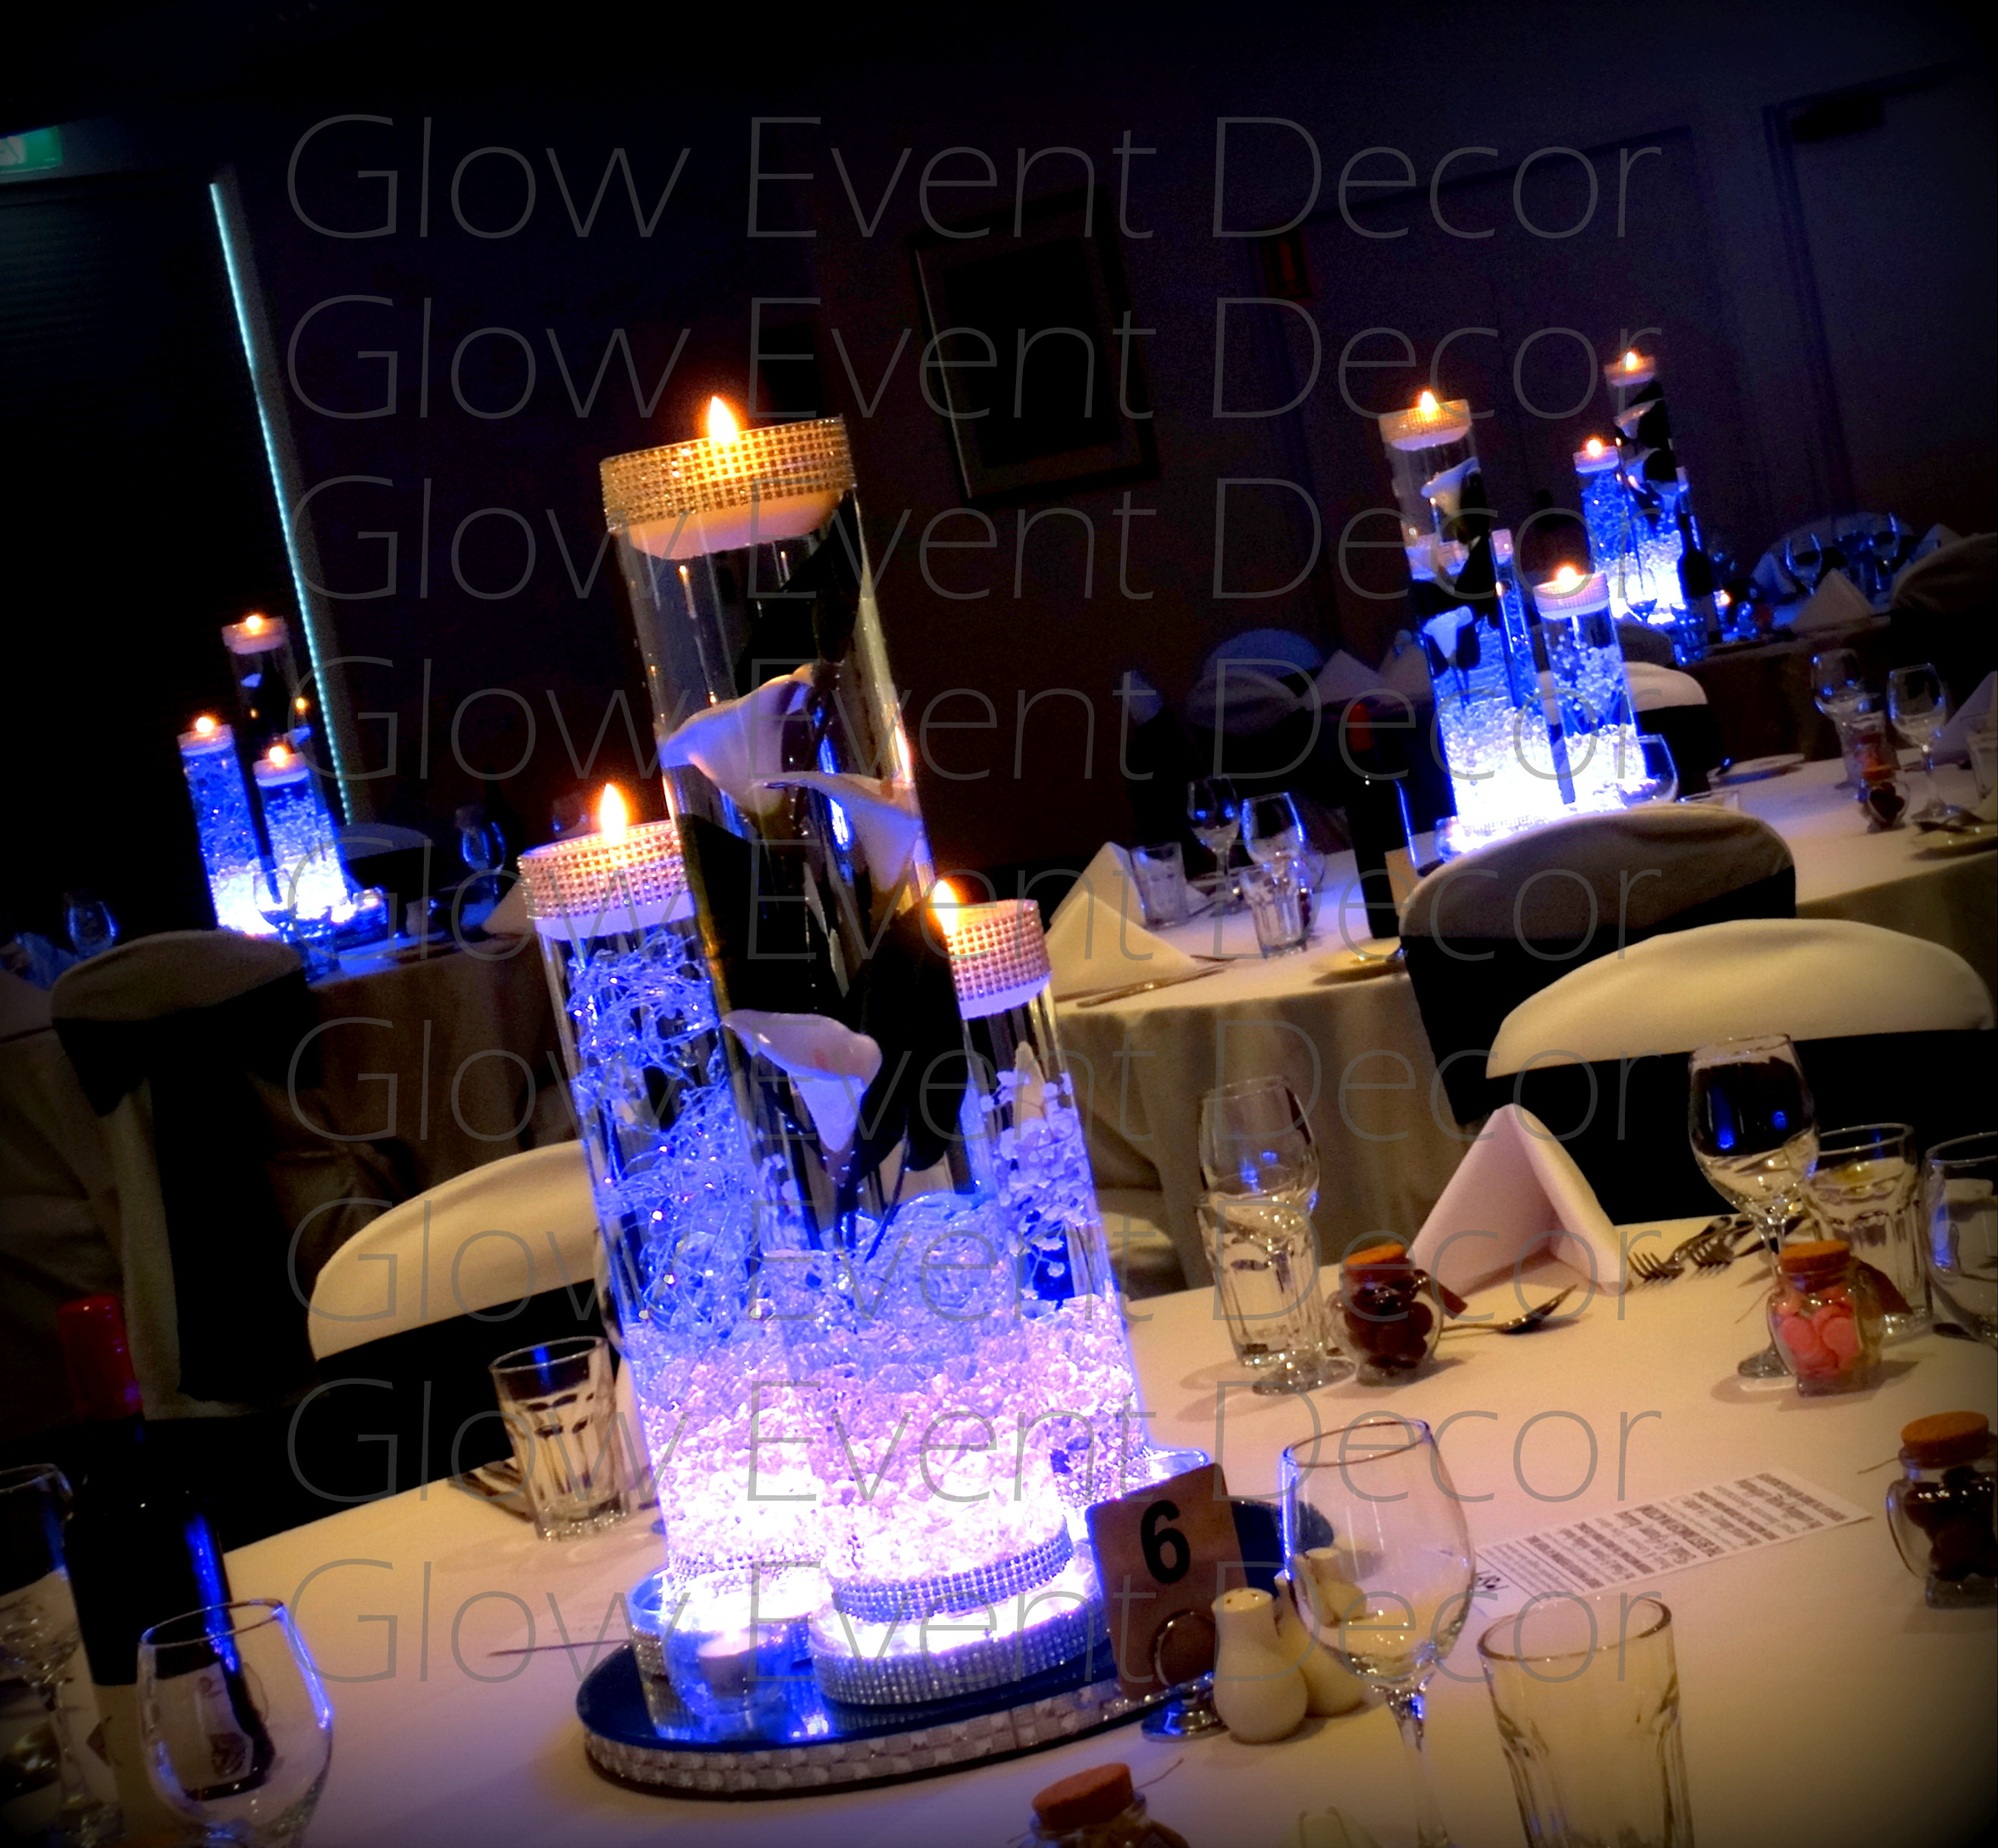 Led orchid cylinder vase glow event decor cylinder vase trio with led light bases and floating candles for hire glow event decor adelaide reviewsmspy